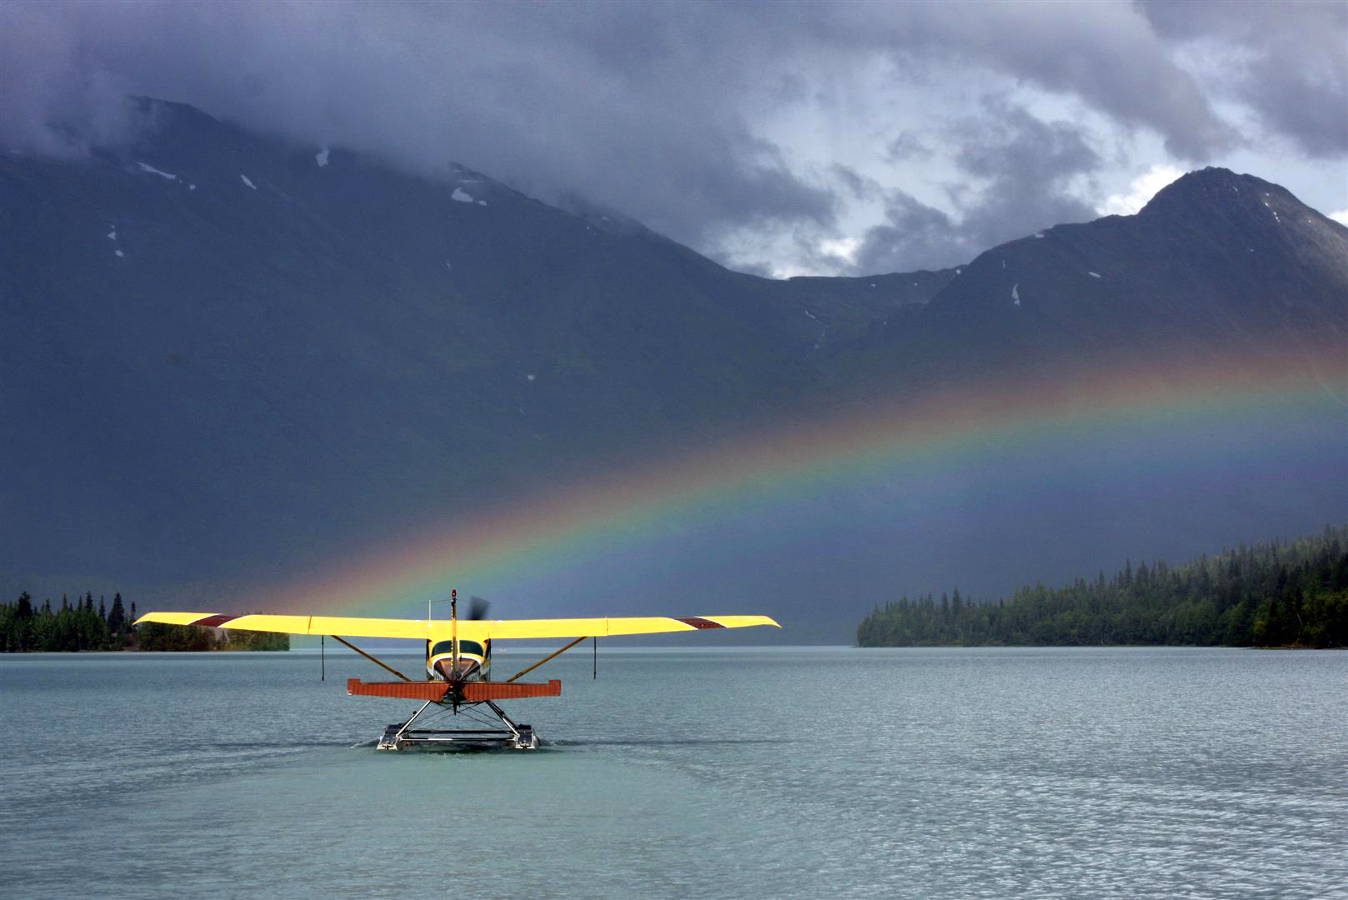 A seaplane on a beautiful Alaskan lake with a rainbow.